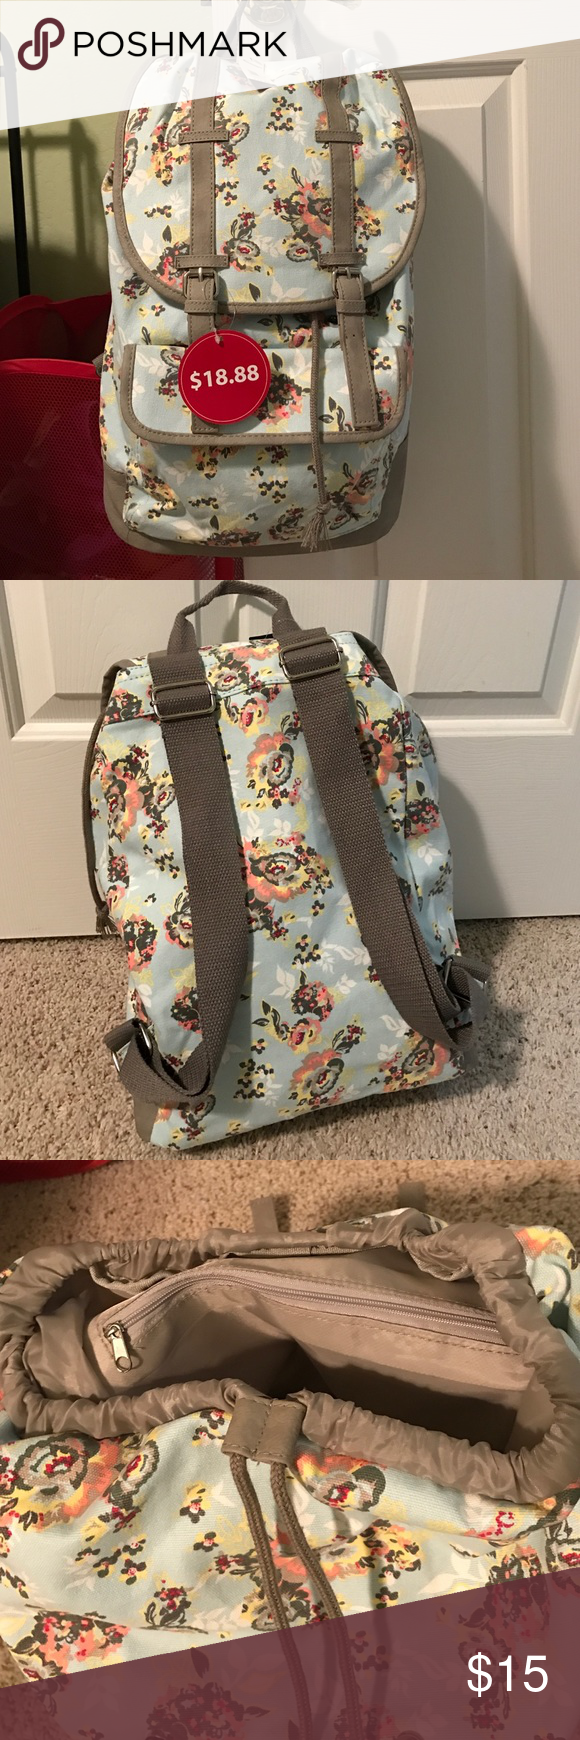 floral draw string top backpack brand new with tags backpack originally $18.88 No Boundaries Bags Backpacks